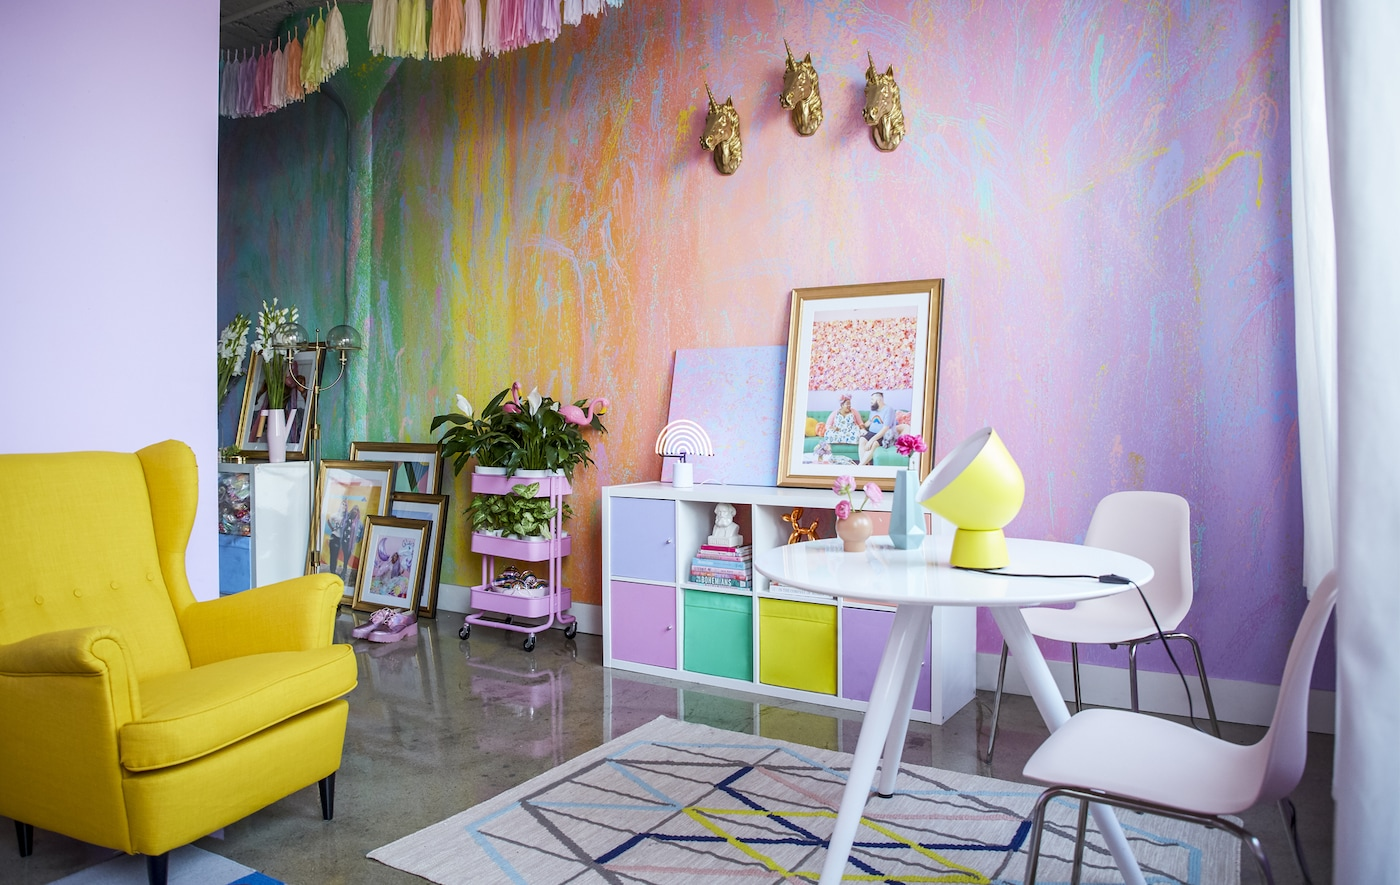 A rainbow coloured living room and dining area.